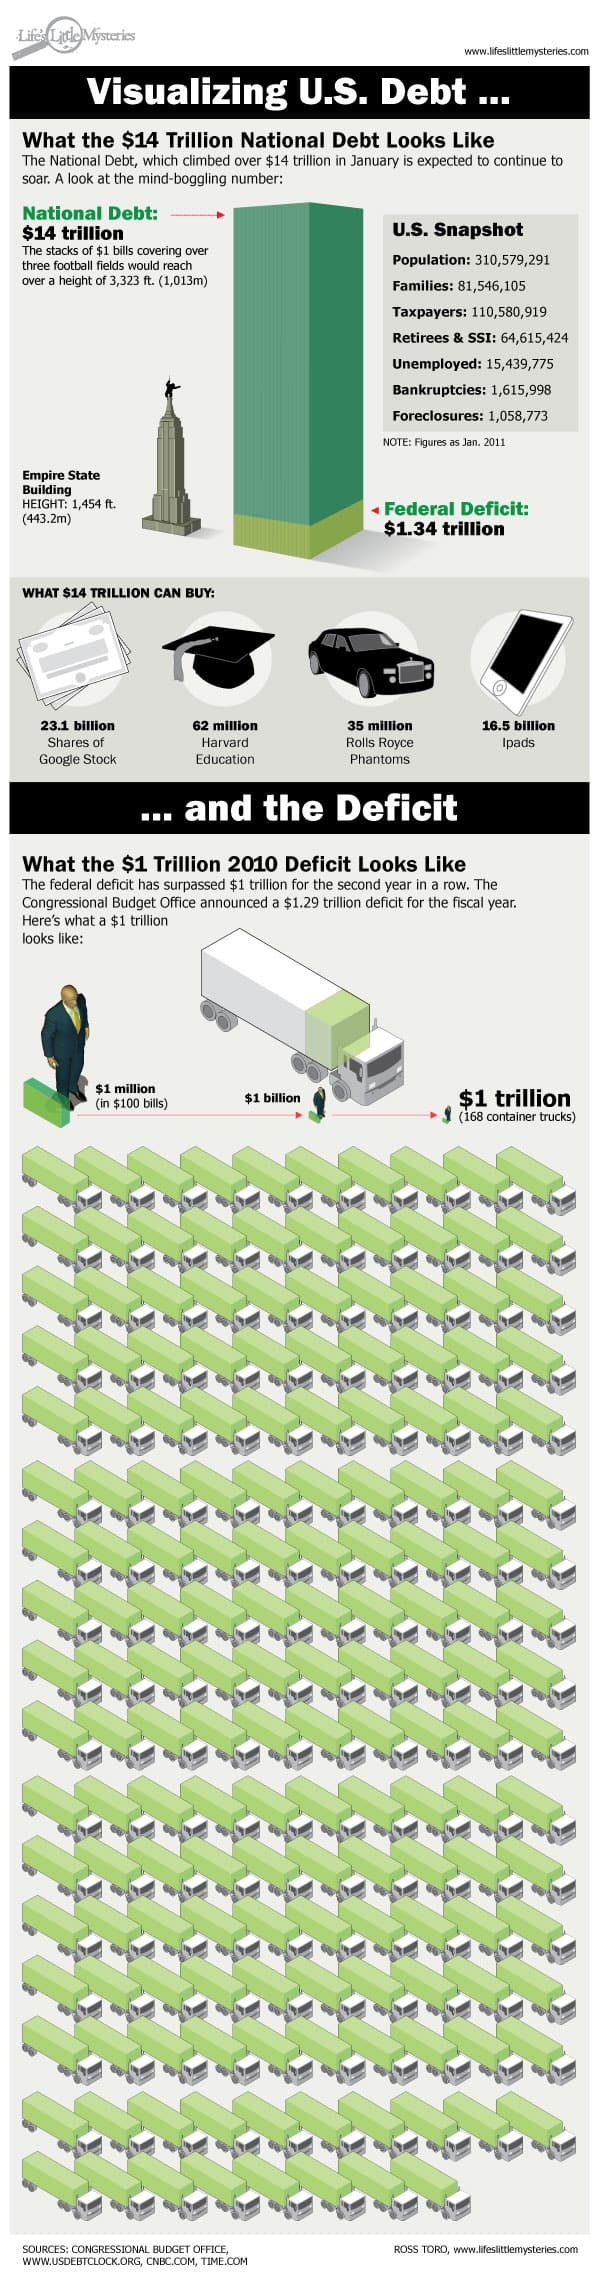 Visualizing National Debt infographic